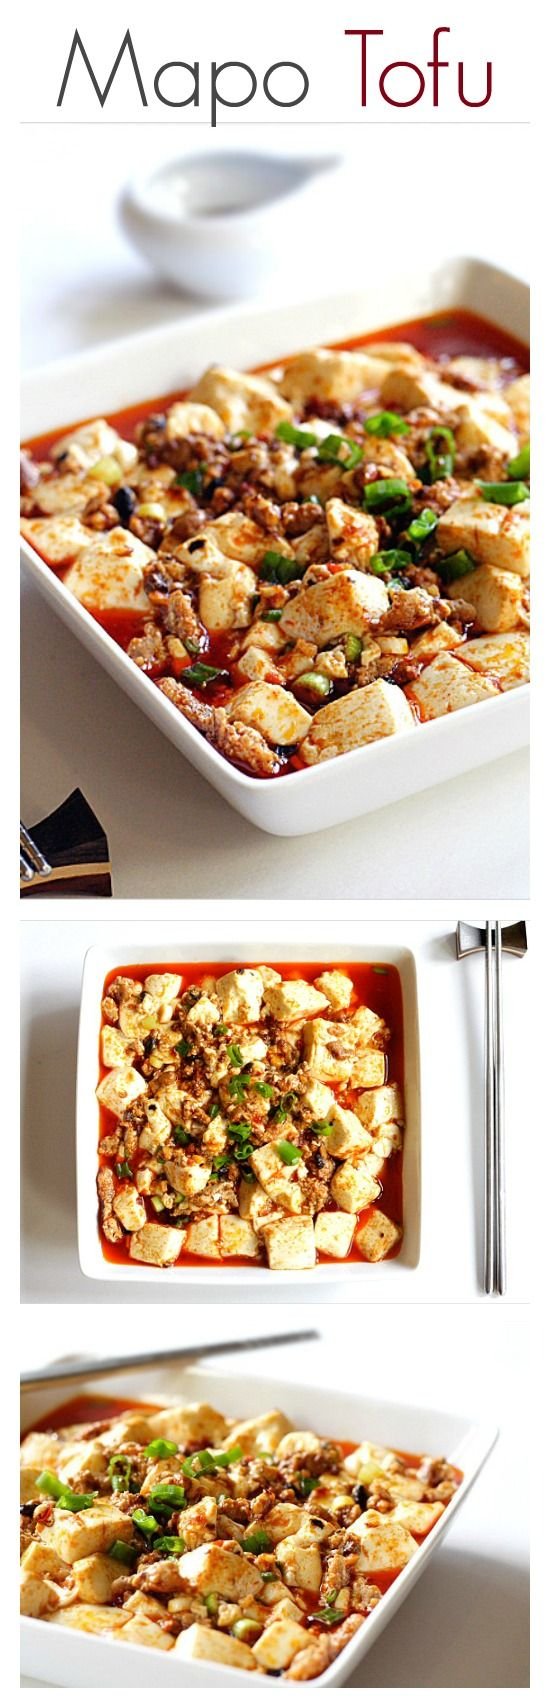 (Chinese recipes, prepare authentic Chinese food now!)